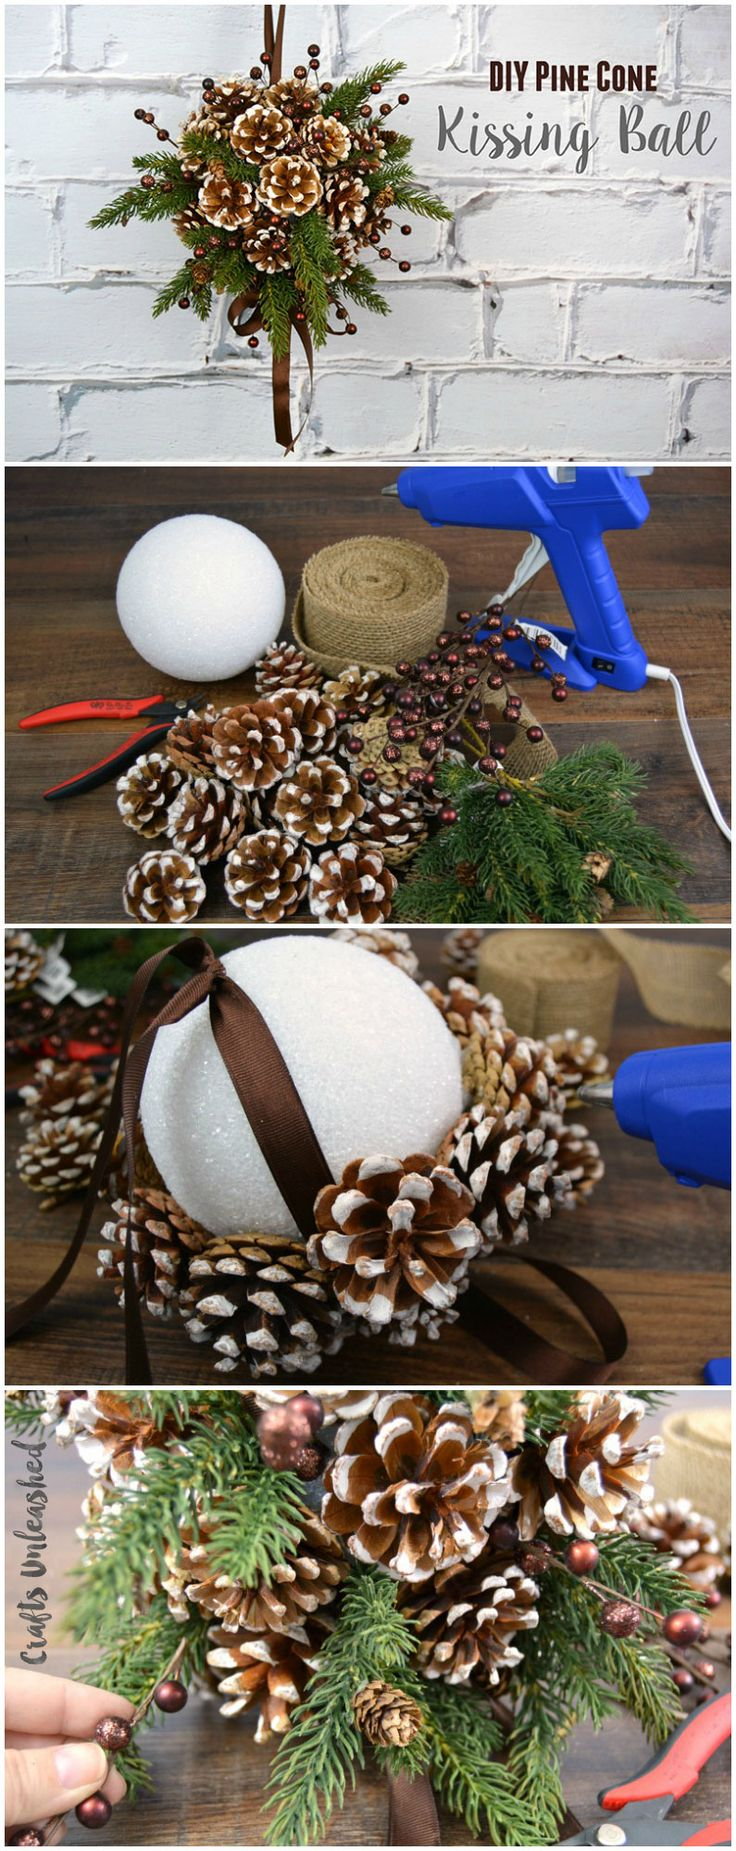 DIY Pine Cone Kissing Ball DIY Holiday Pine Cones Craft Ideas